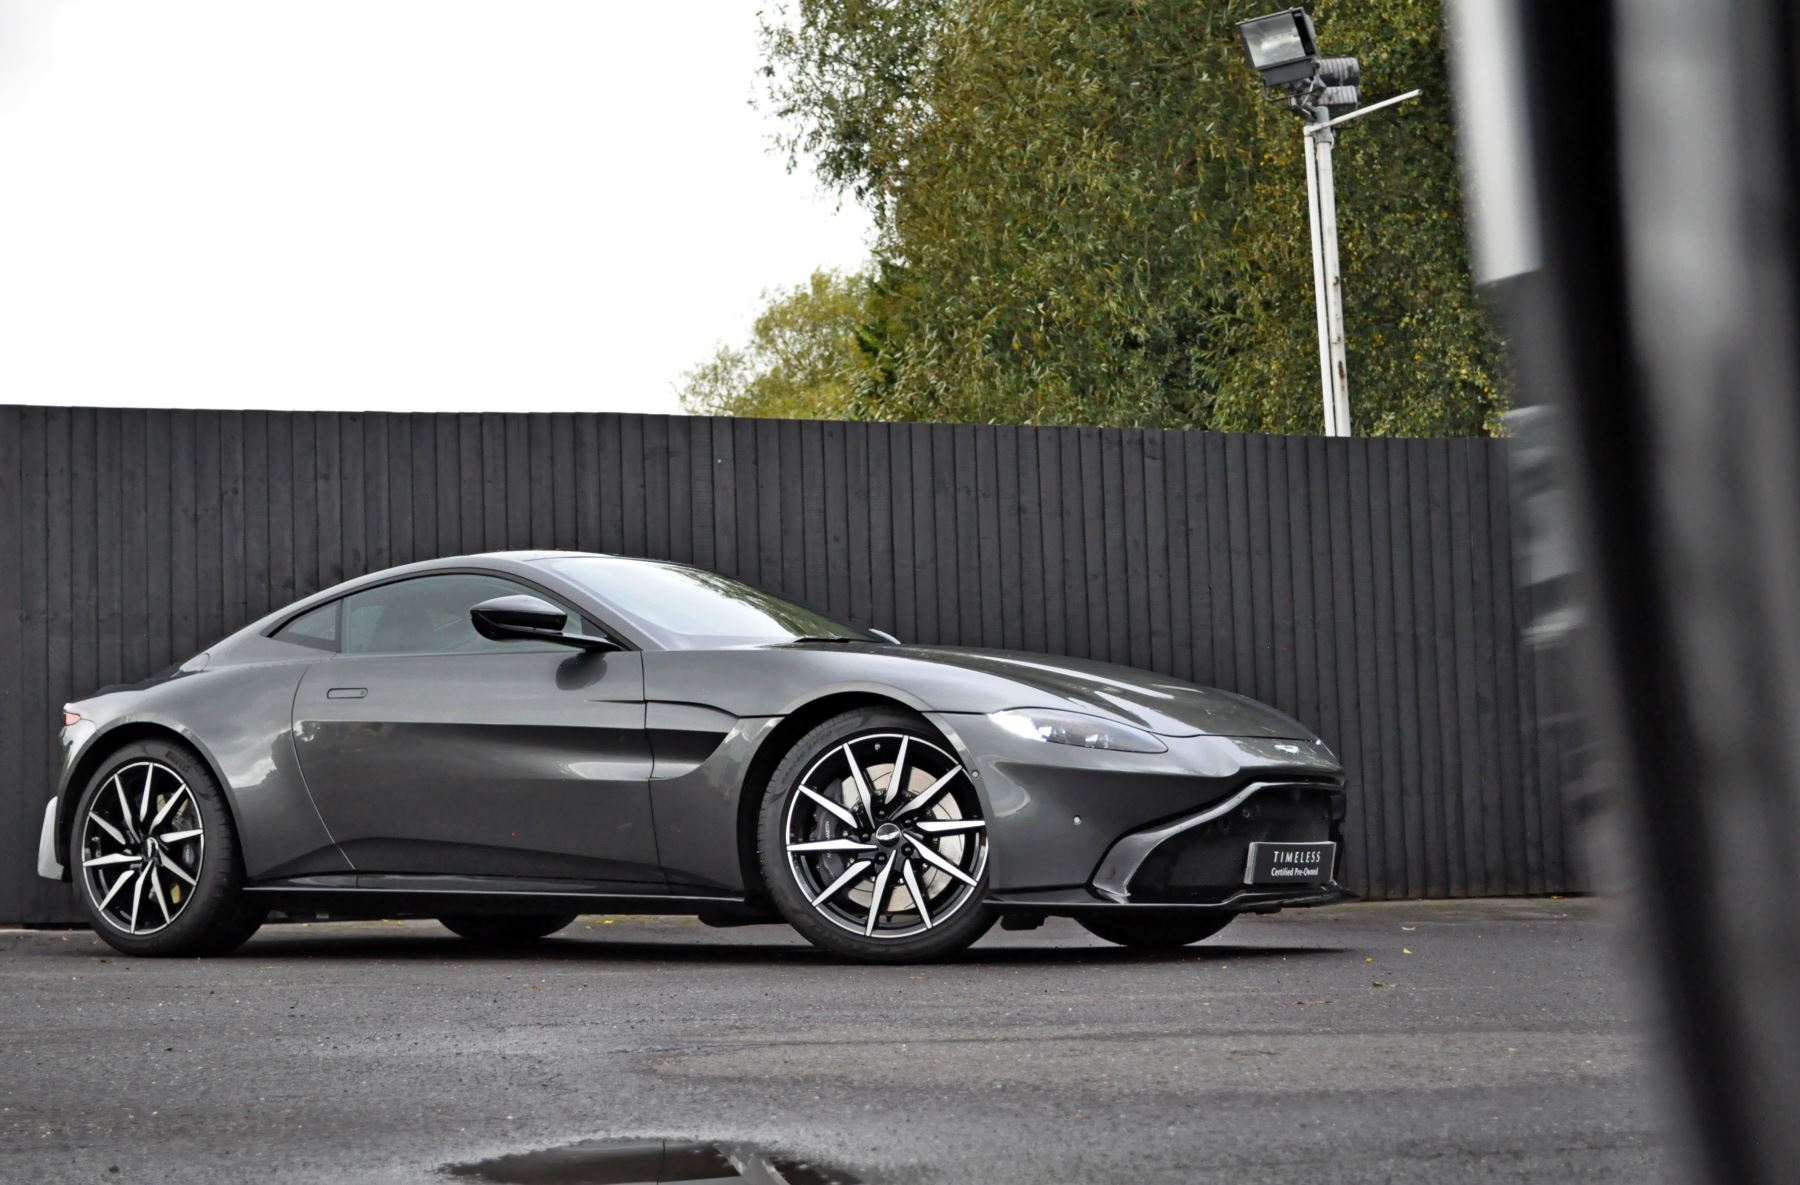 Aston Martin New Vantage 2dr ZF 8 Speed image 26